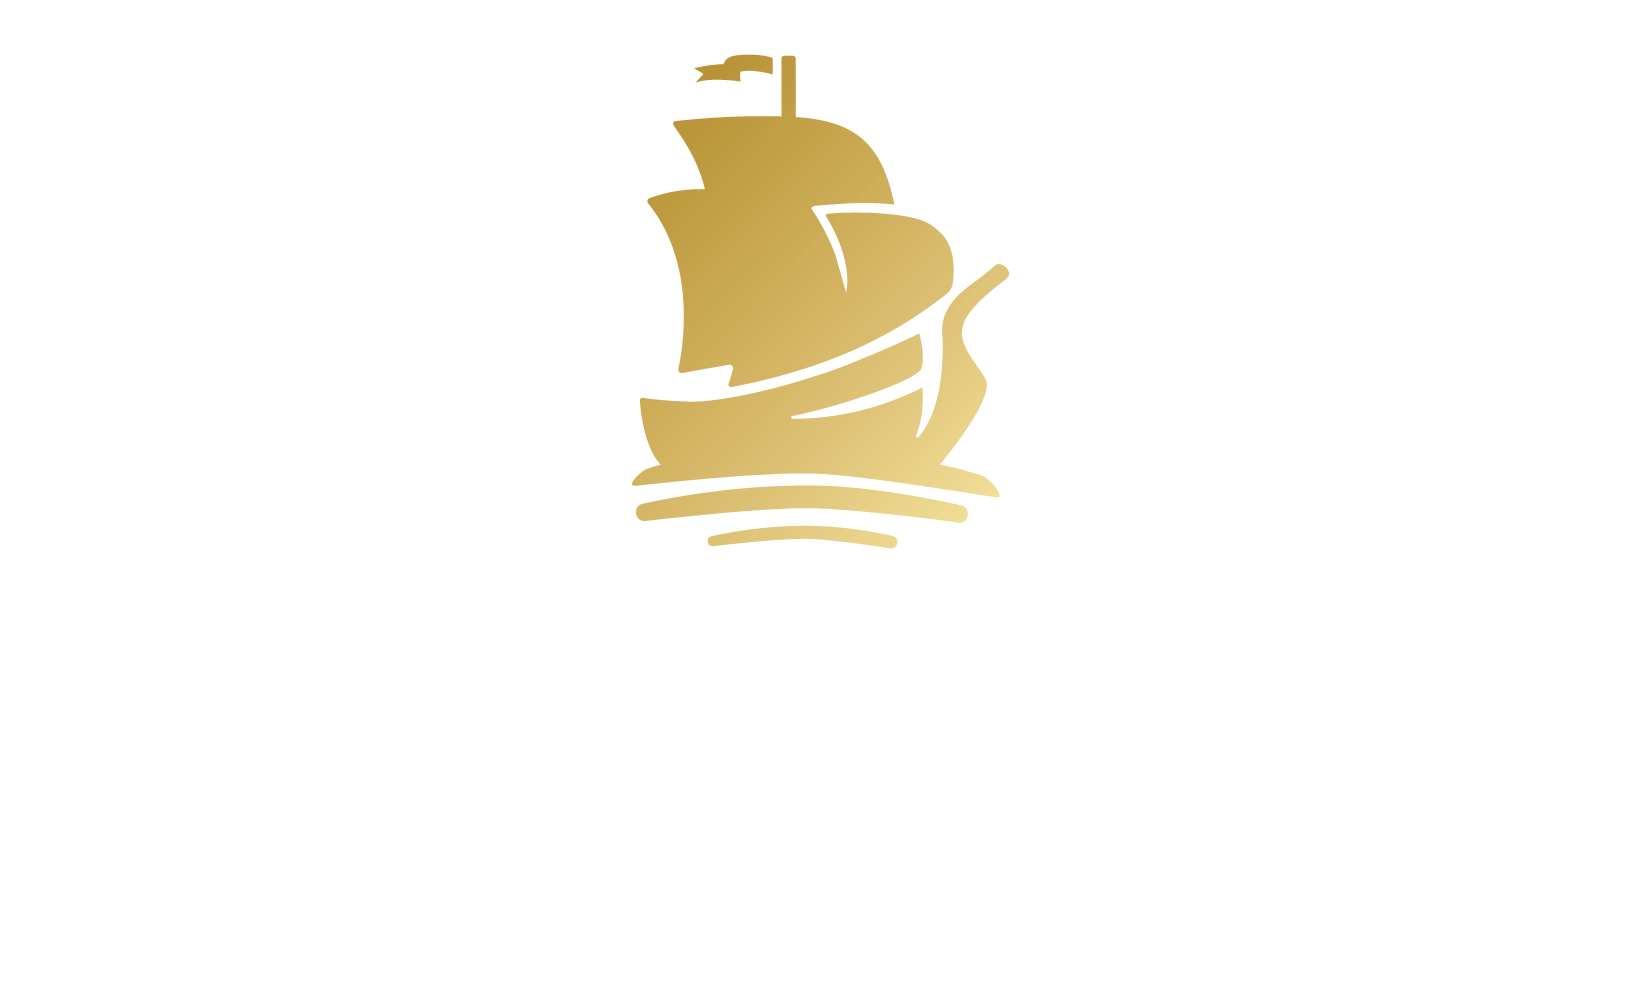 Pirate logo transparent background